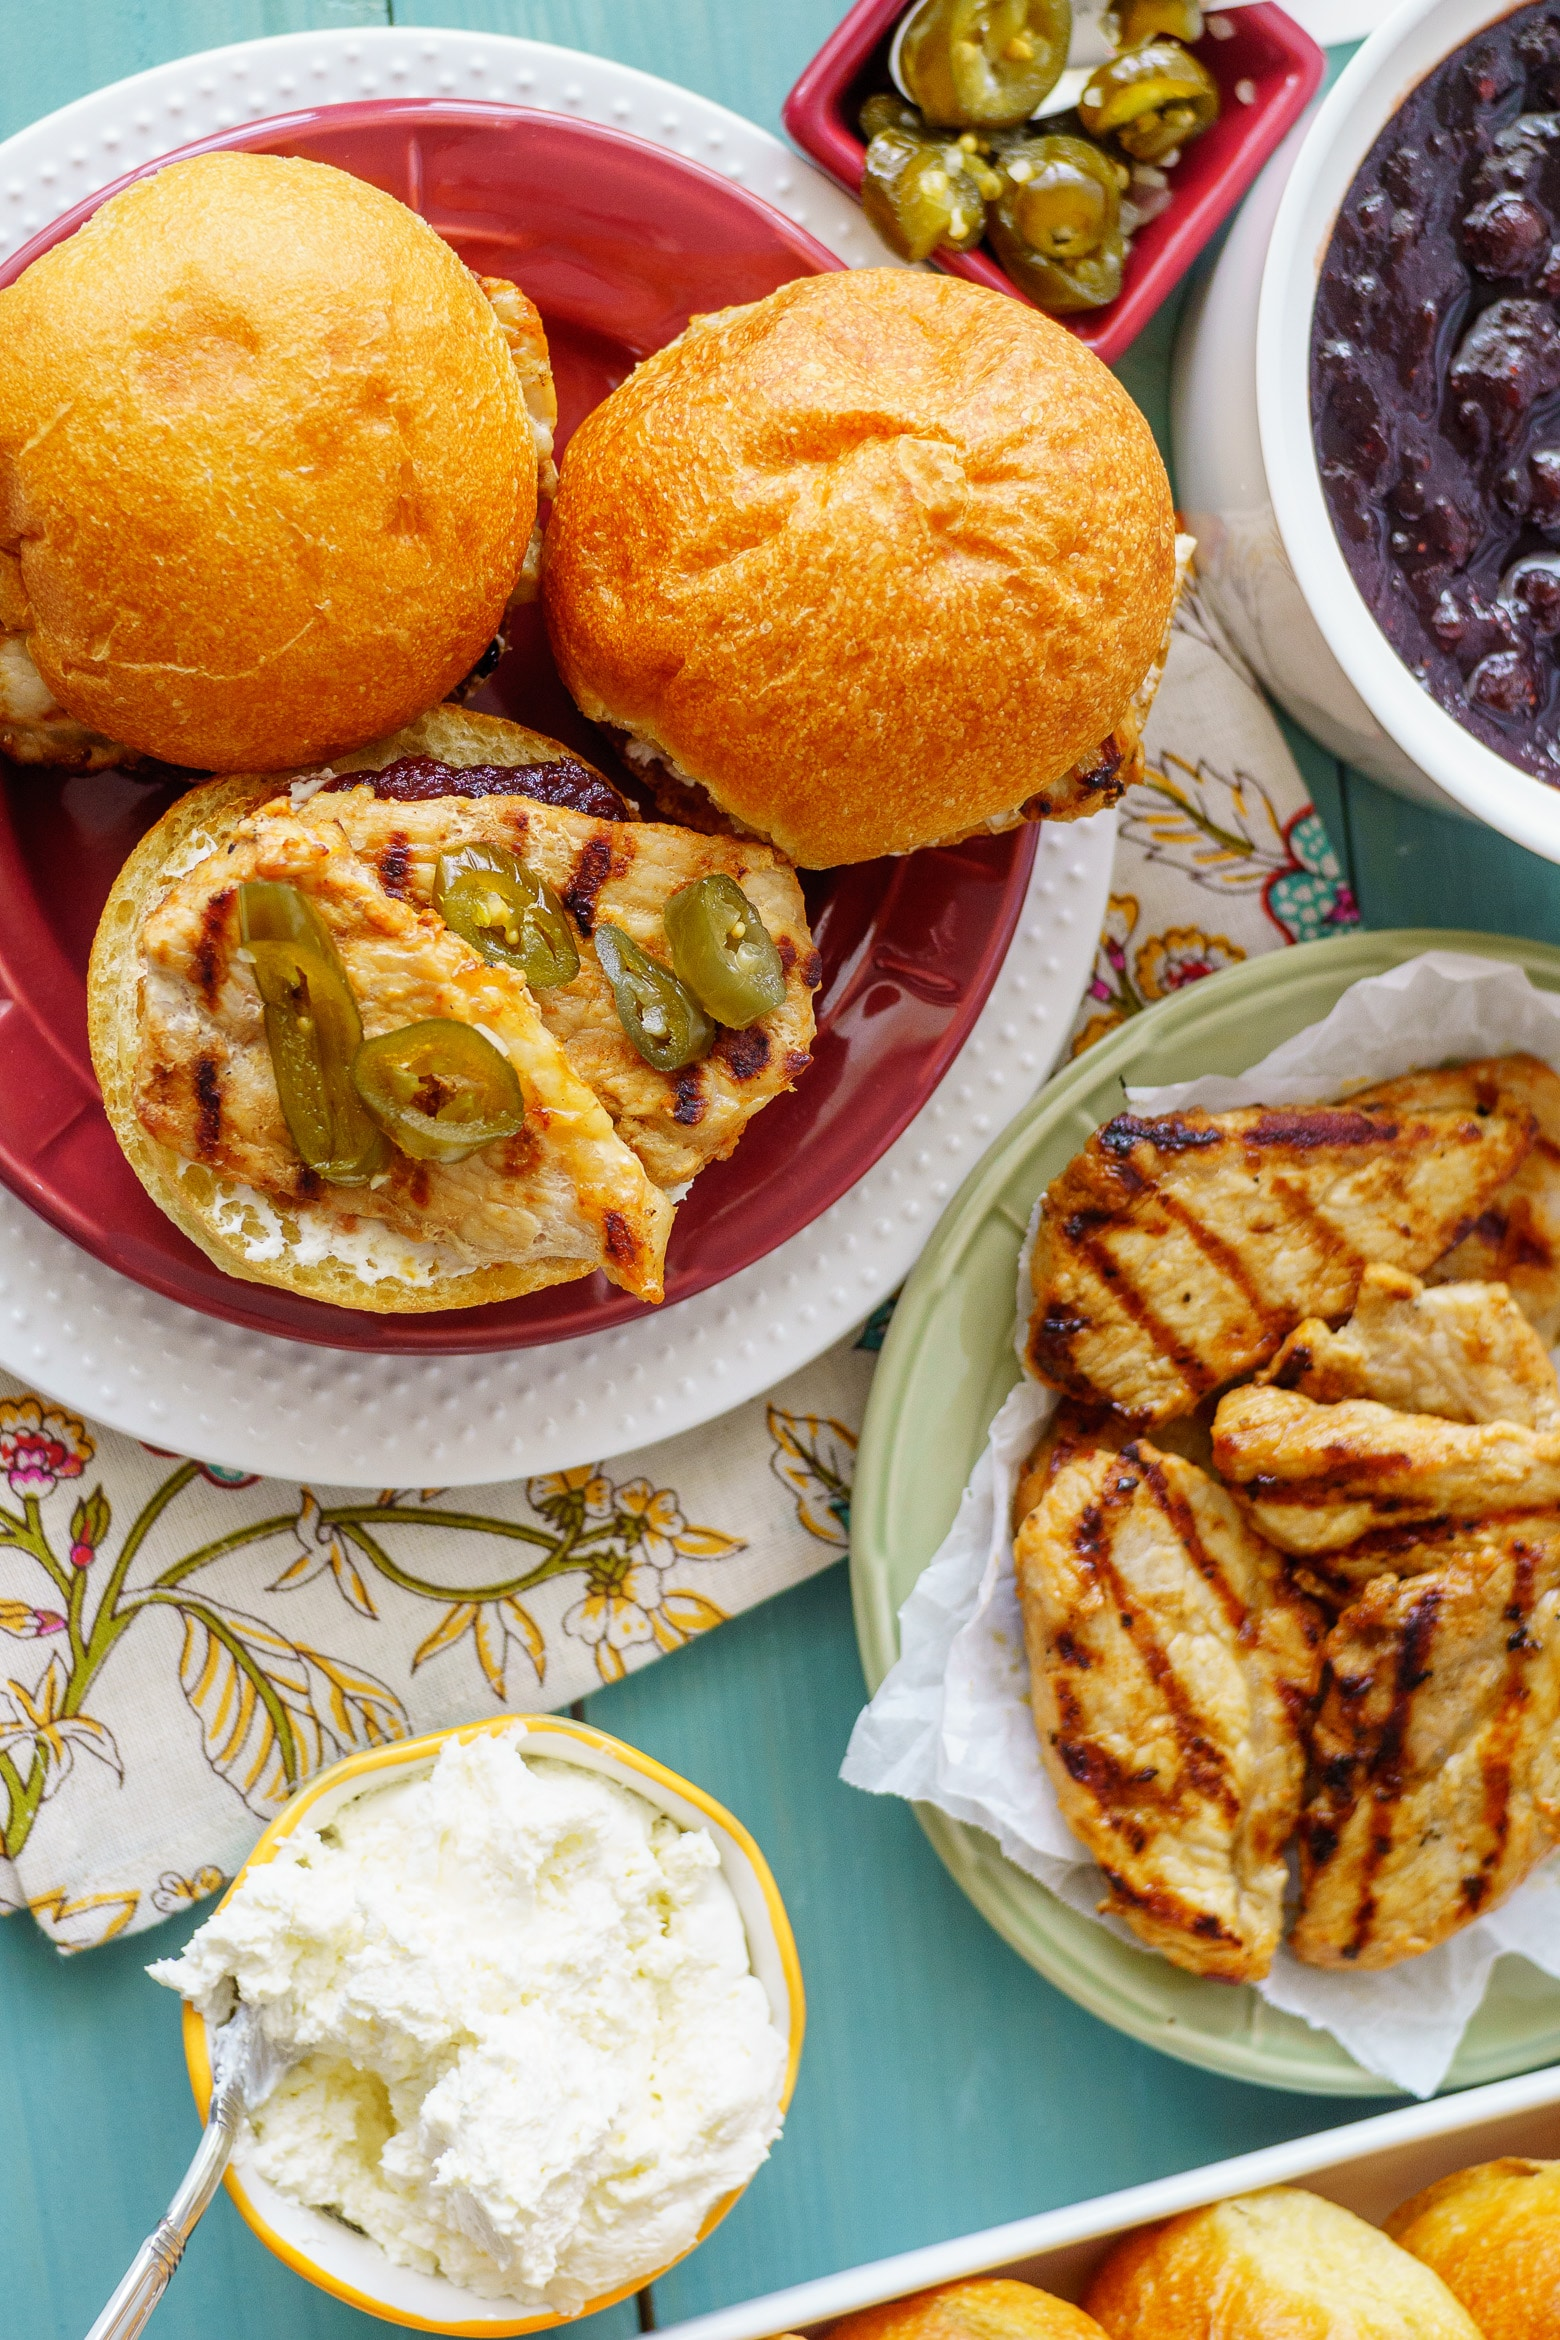 A spicyjalapeñocranberry jelly tops these grilled pork tenderloin sandwiches to make a fast and tasty weeknight meal in under 30 minutes!